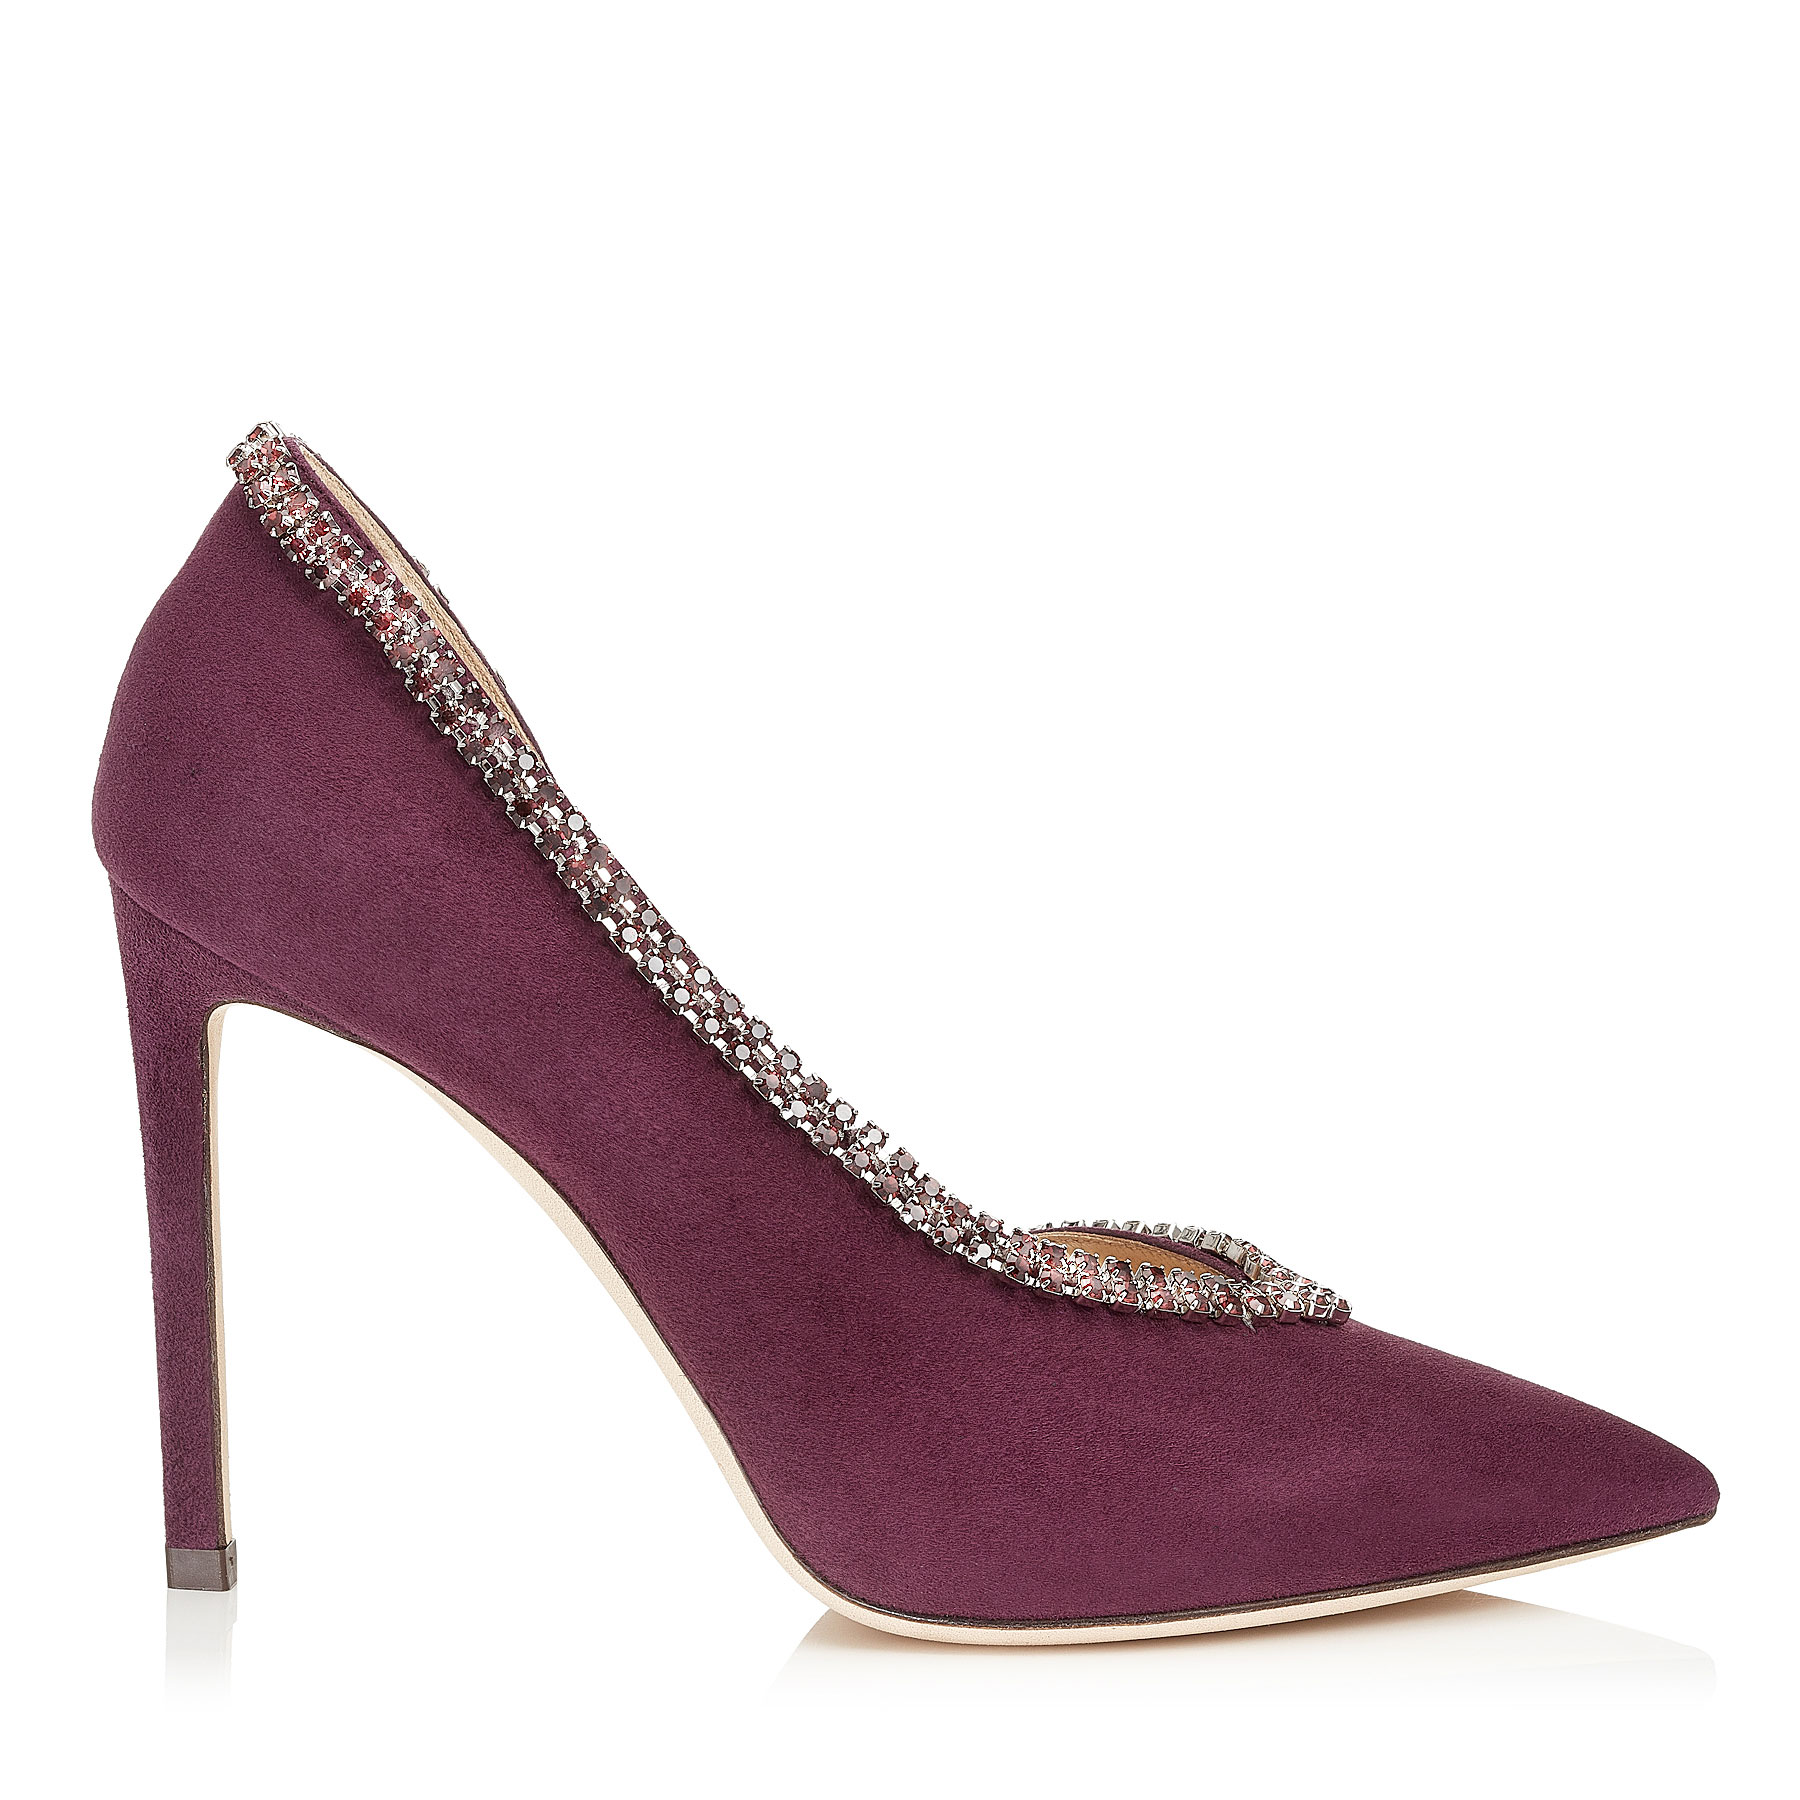 LILIAN 100 Grape Suede Pointy Toe Pumps with Crystal Trim by Jimmy Choo